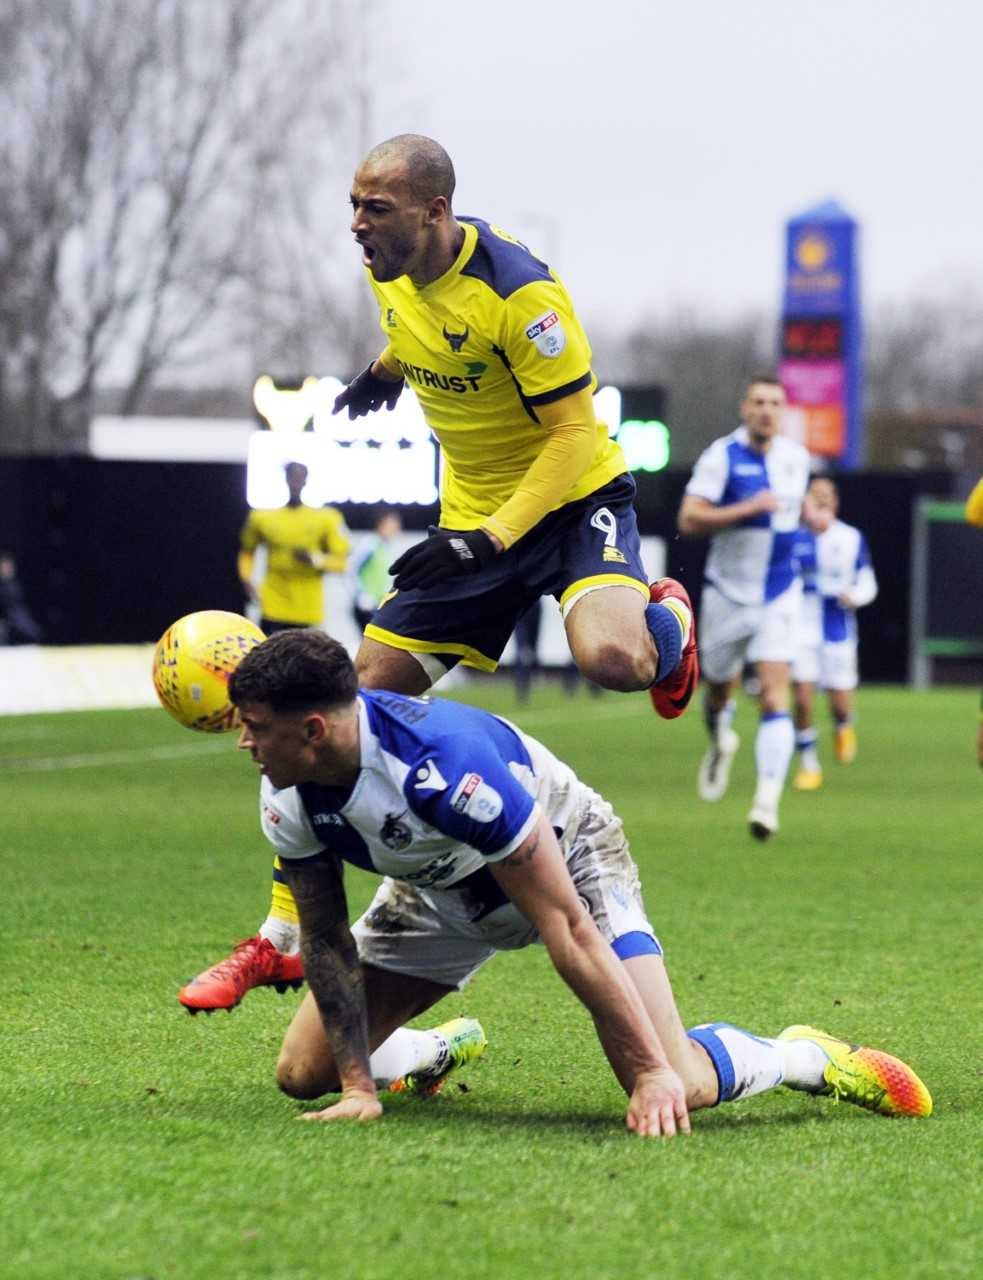 Wes Thomas puts Bristol Rovers defender Tom Broadbent under pressure   Picture: David Fleming